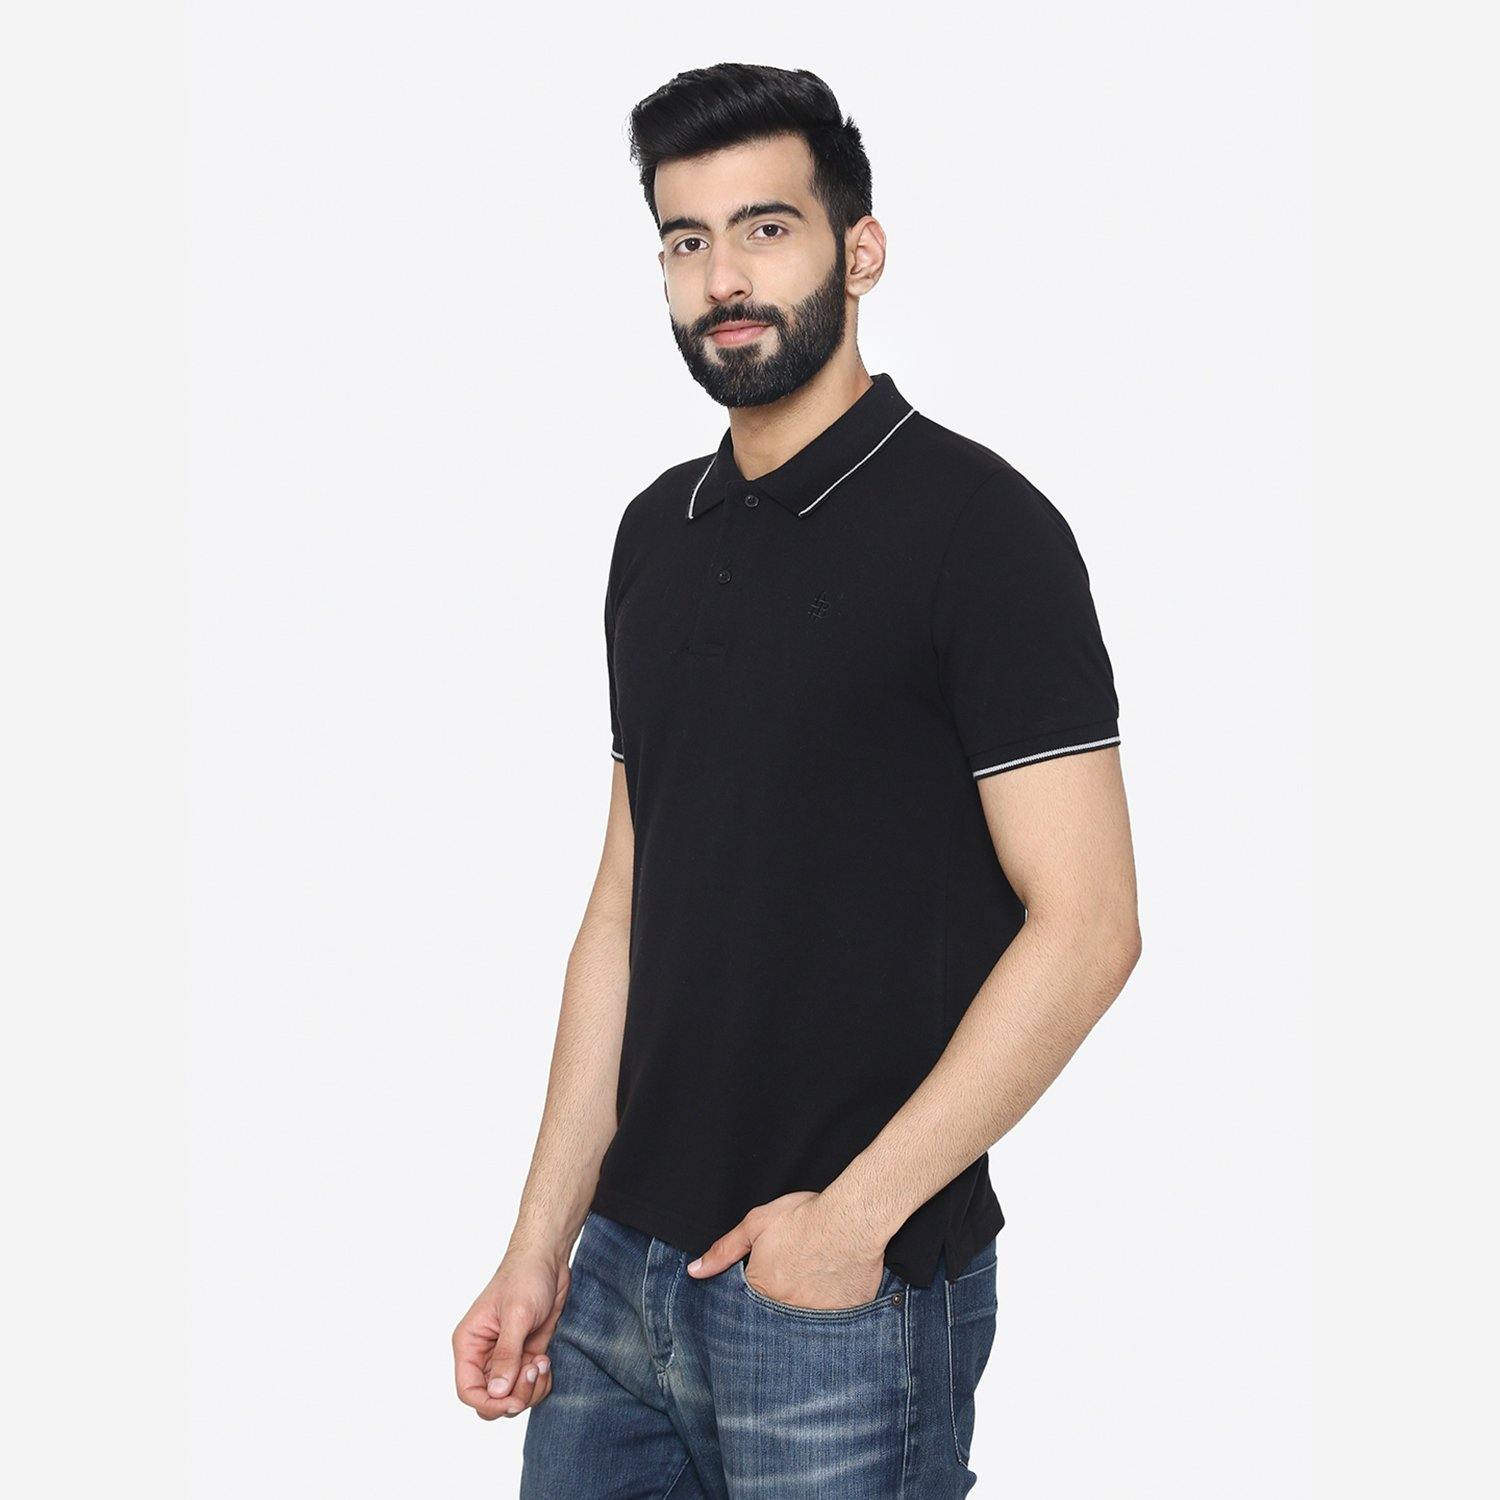 Men's  Stylish  Polo - Neck T - Shirt For Summer - Black